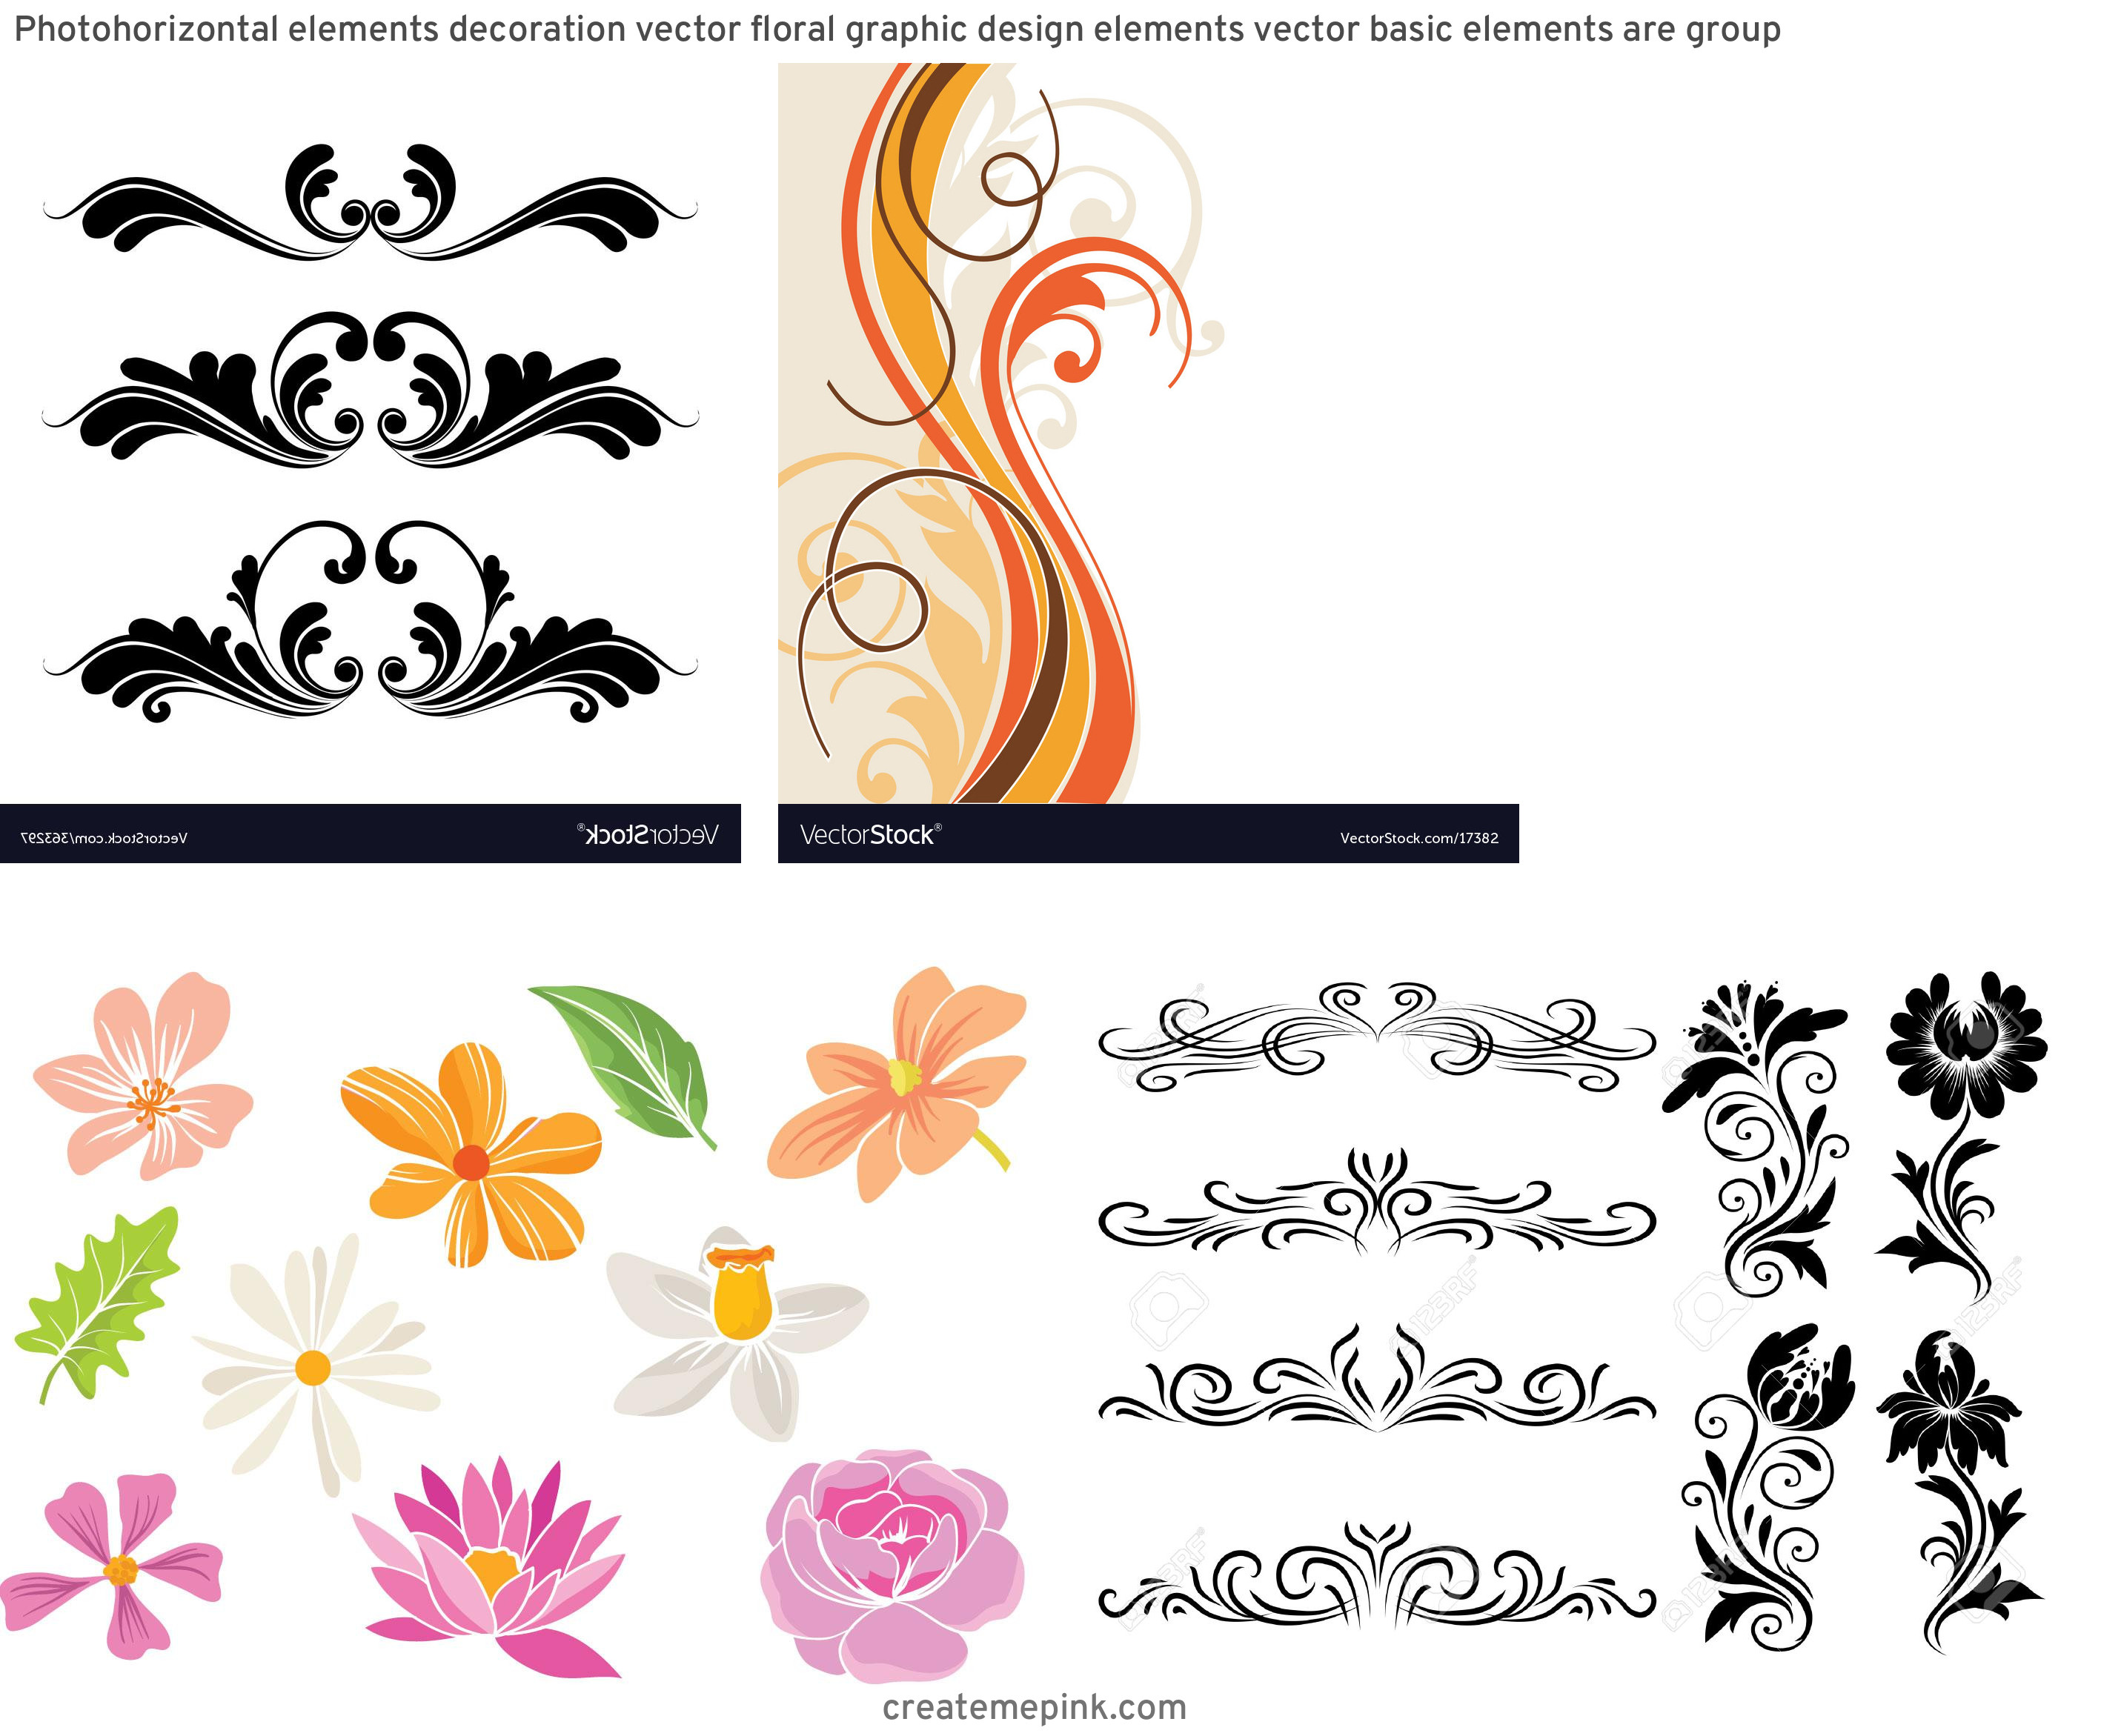 Vector Graphics Floral: Photohorizontal Elements Decoration Vector Floral Graphic Design Elements Vector Basic Elements Are Group